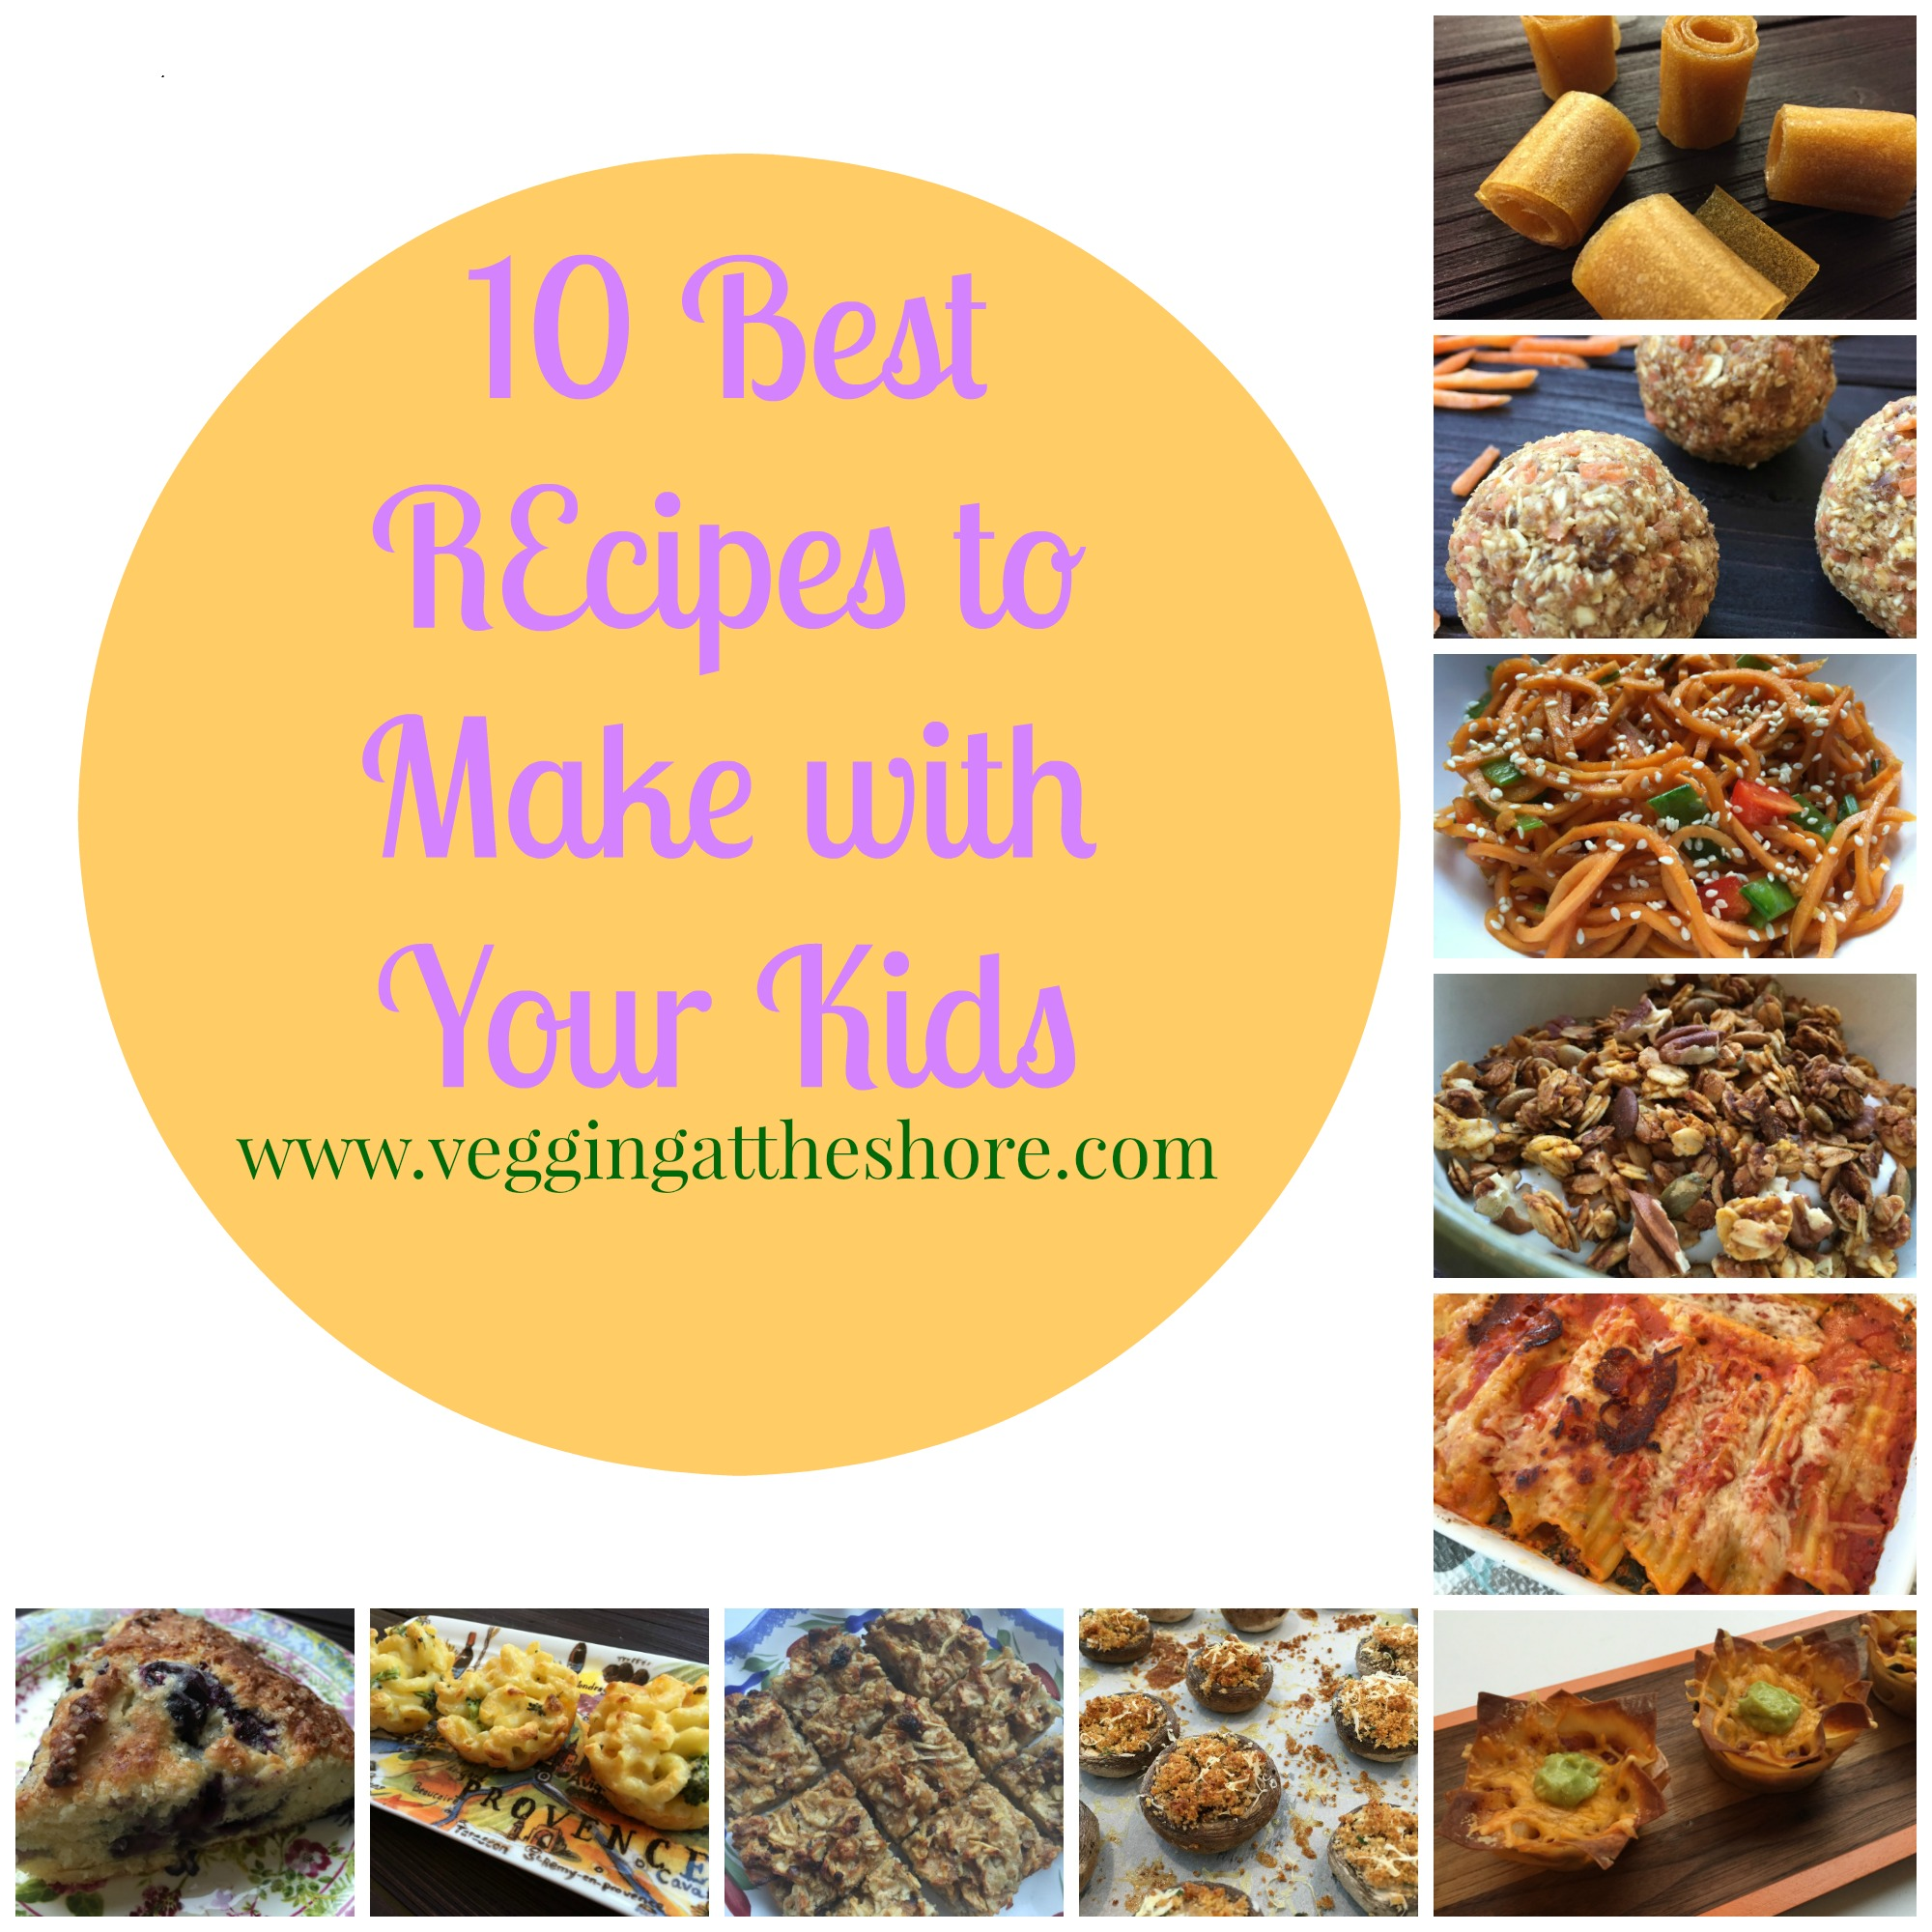 10-best-recipes-to-make-with-your-kids